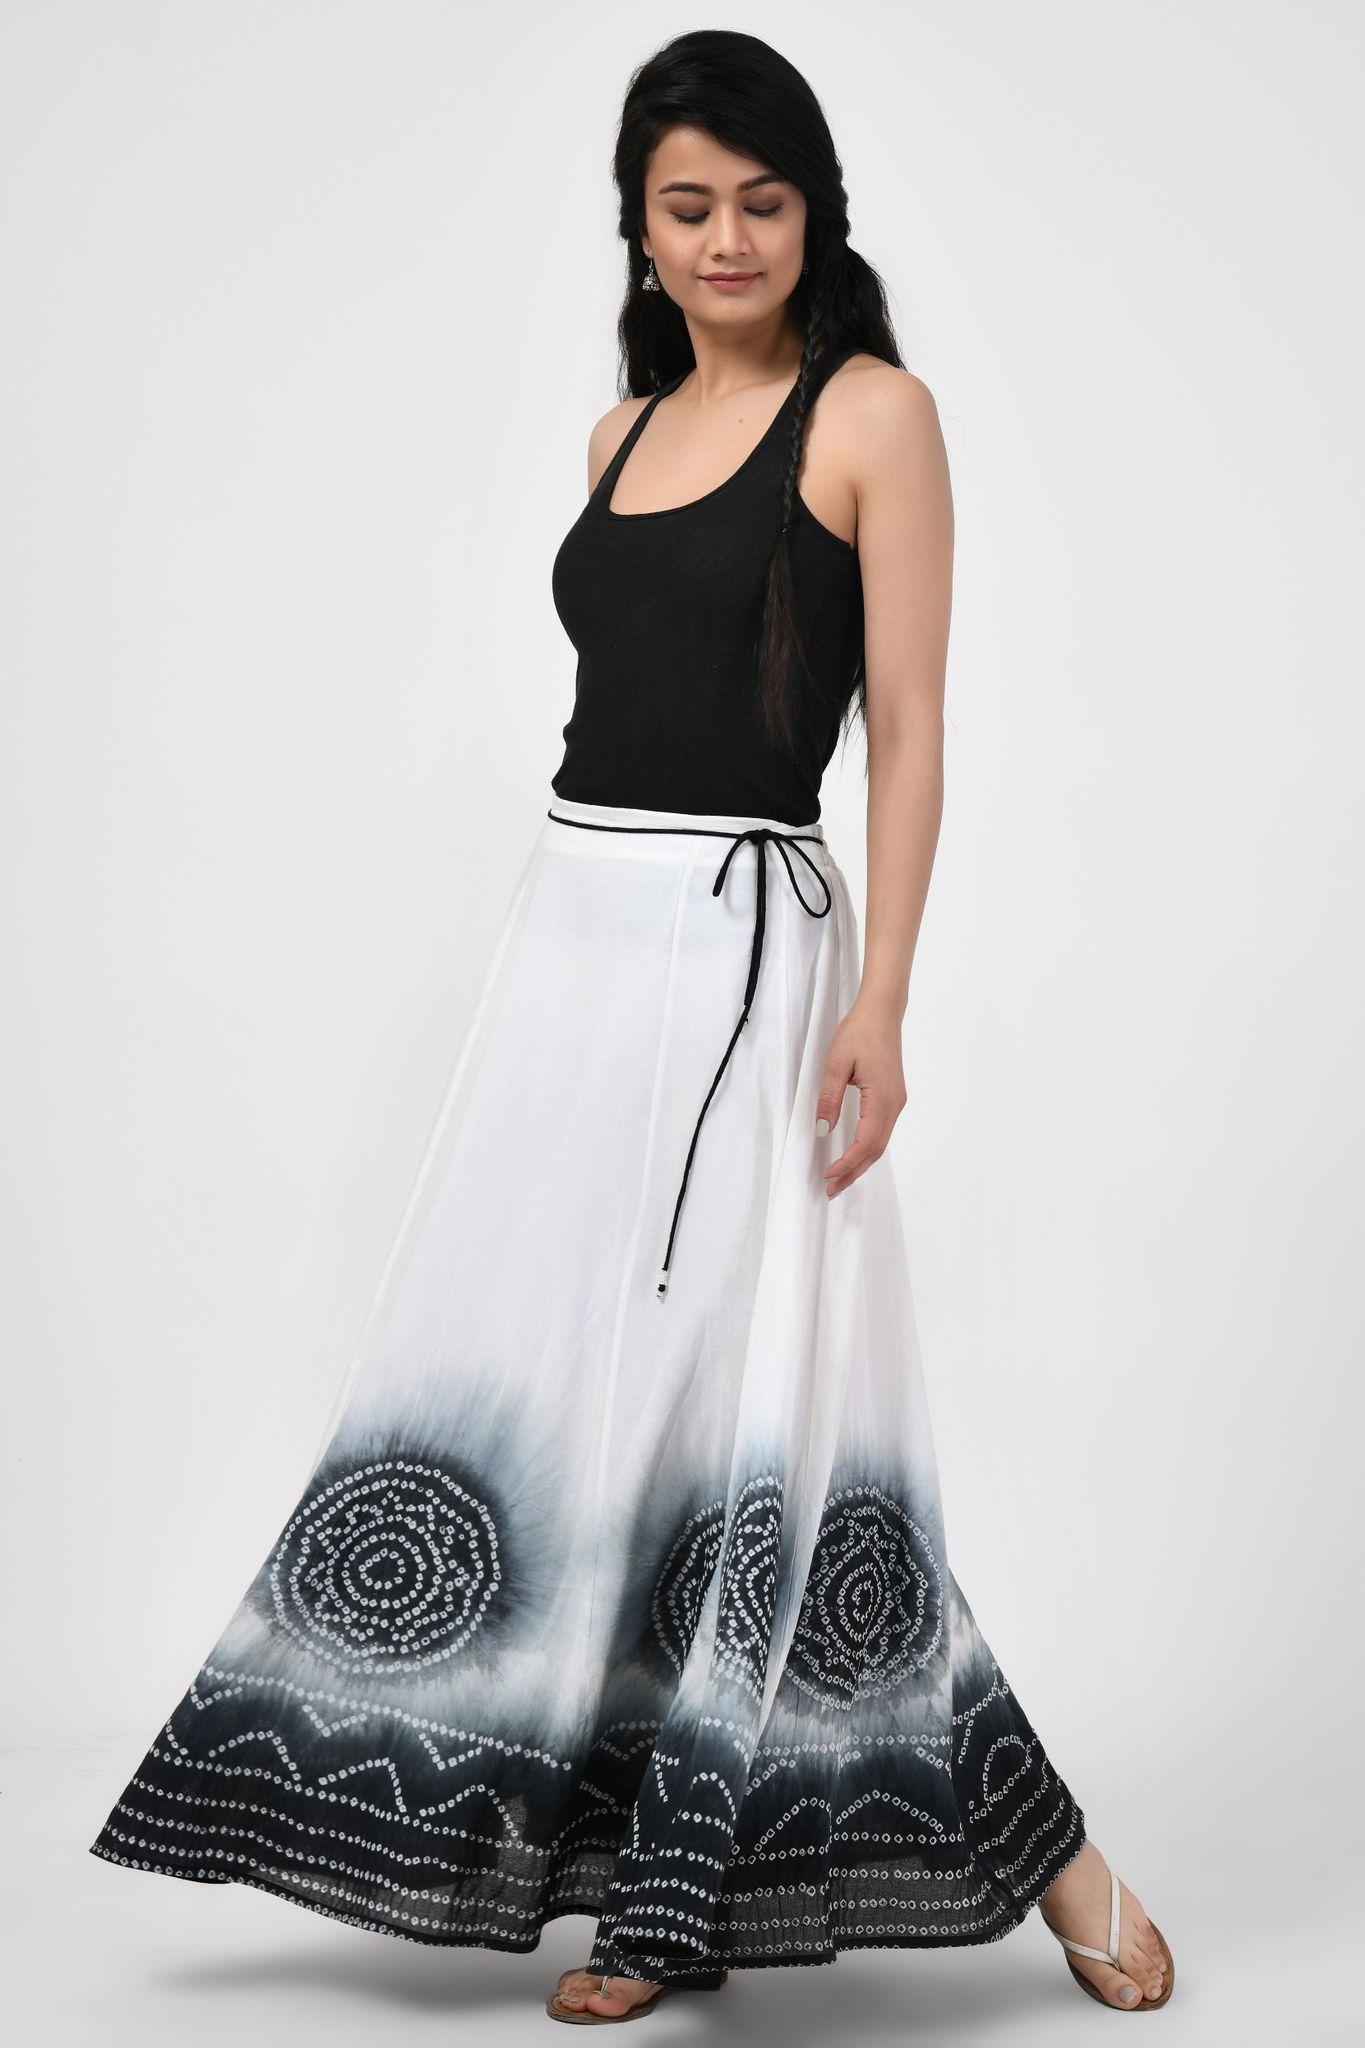 Tie & Dye Black & White Long Skirt